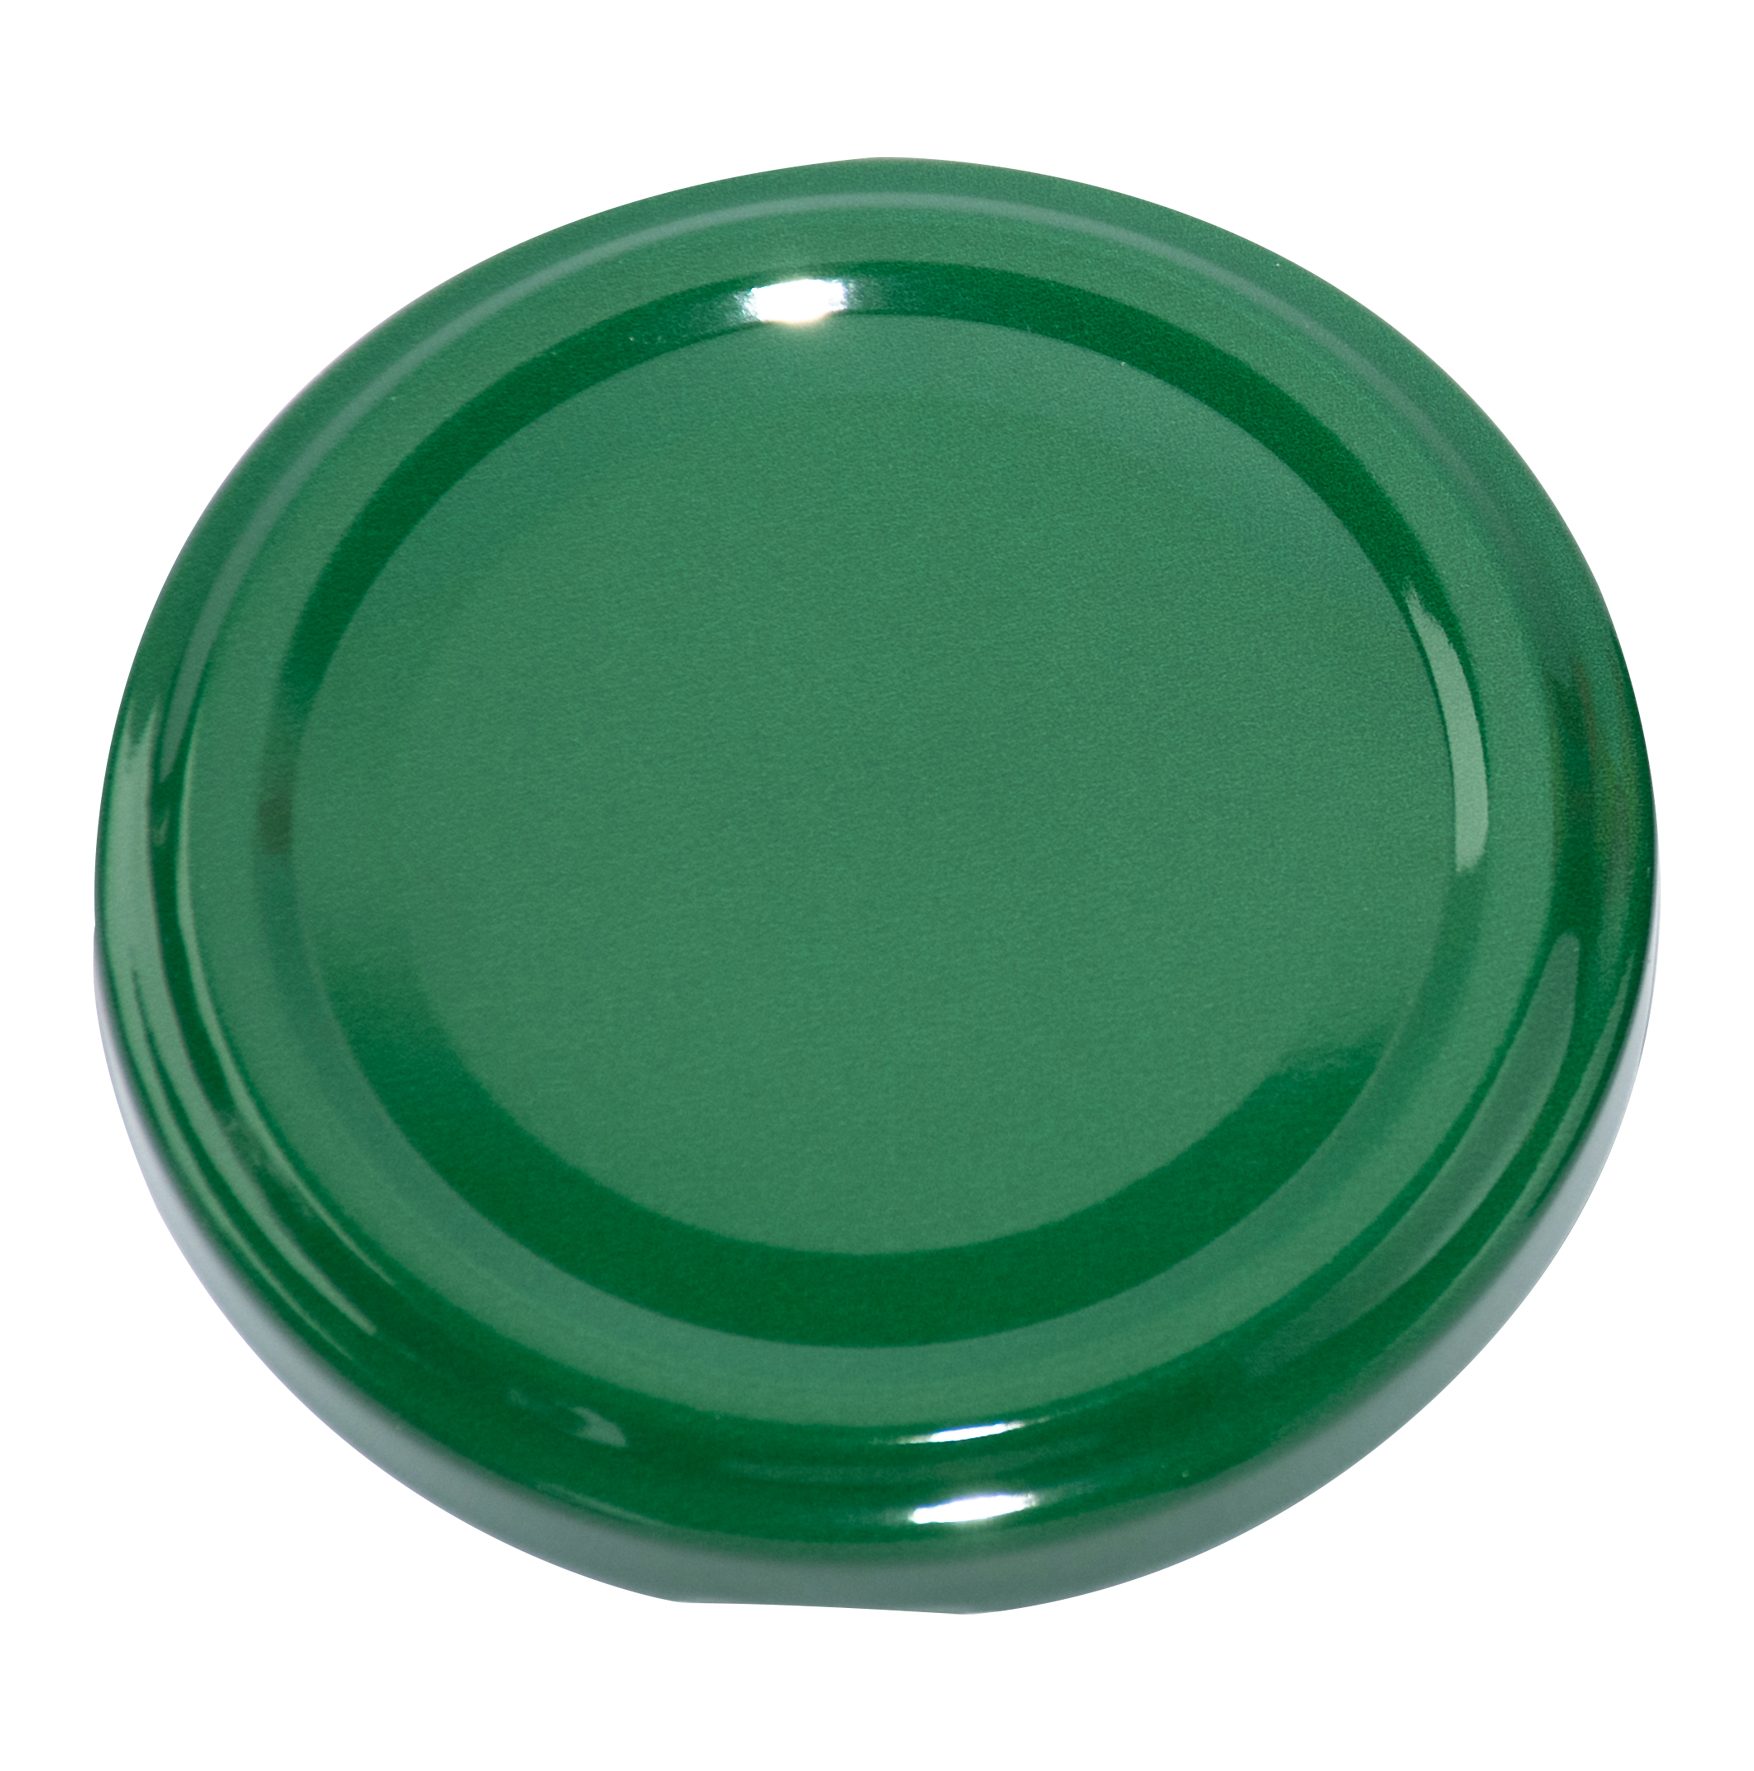 TAPA METÁLICA 63 mm TO VERDE